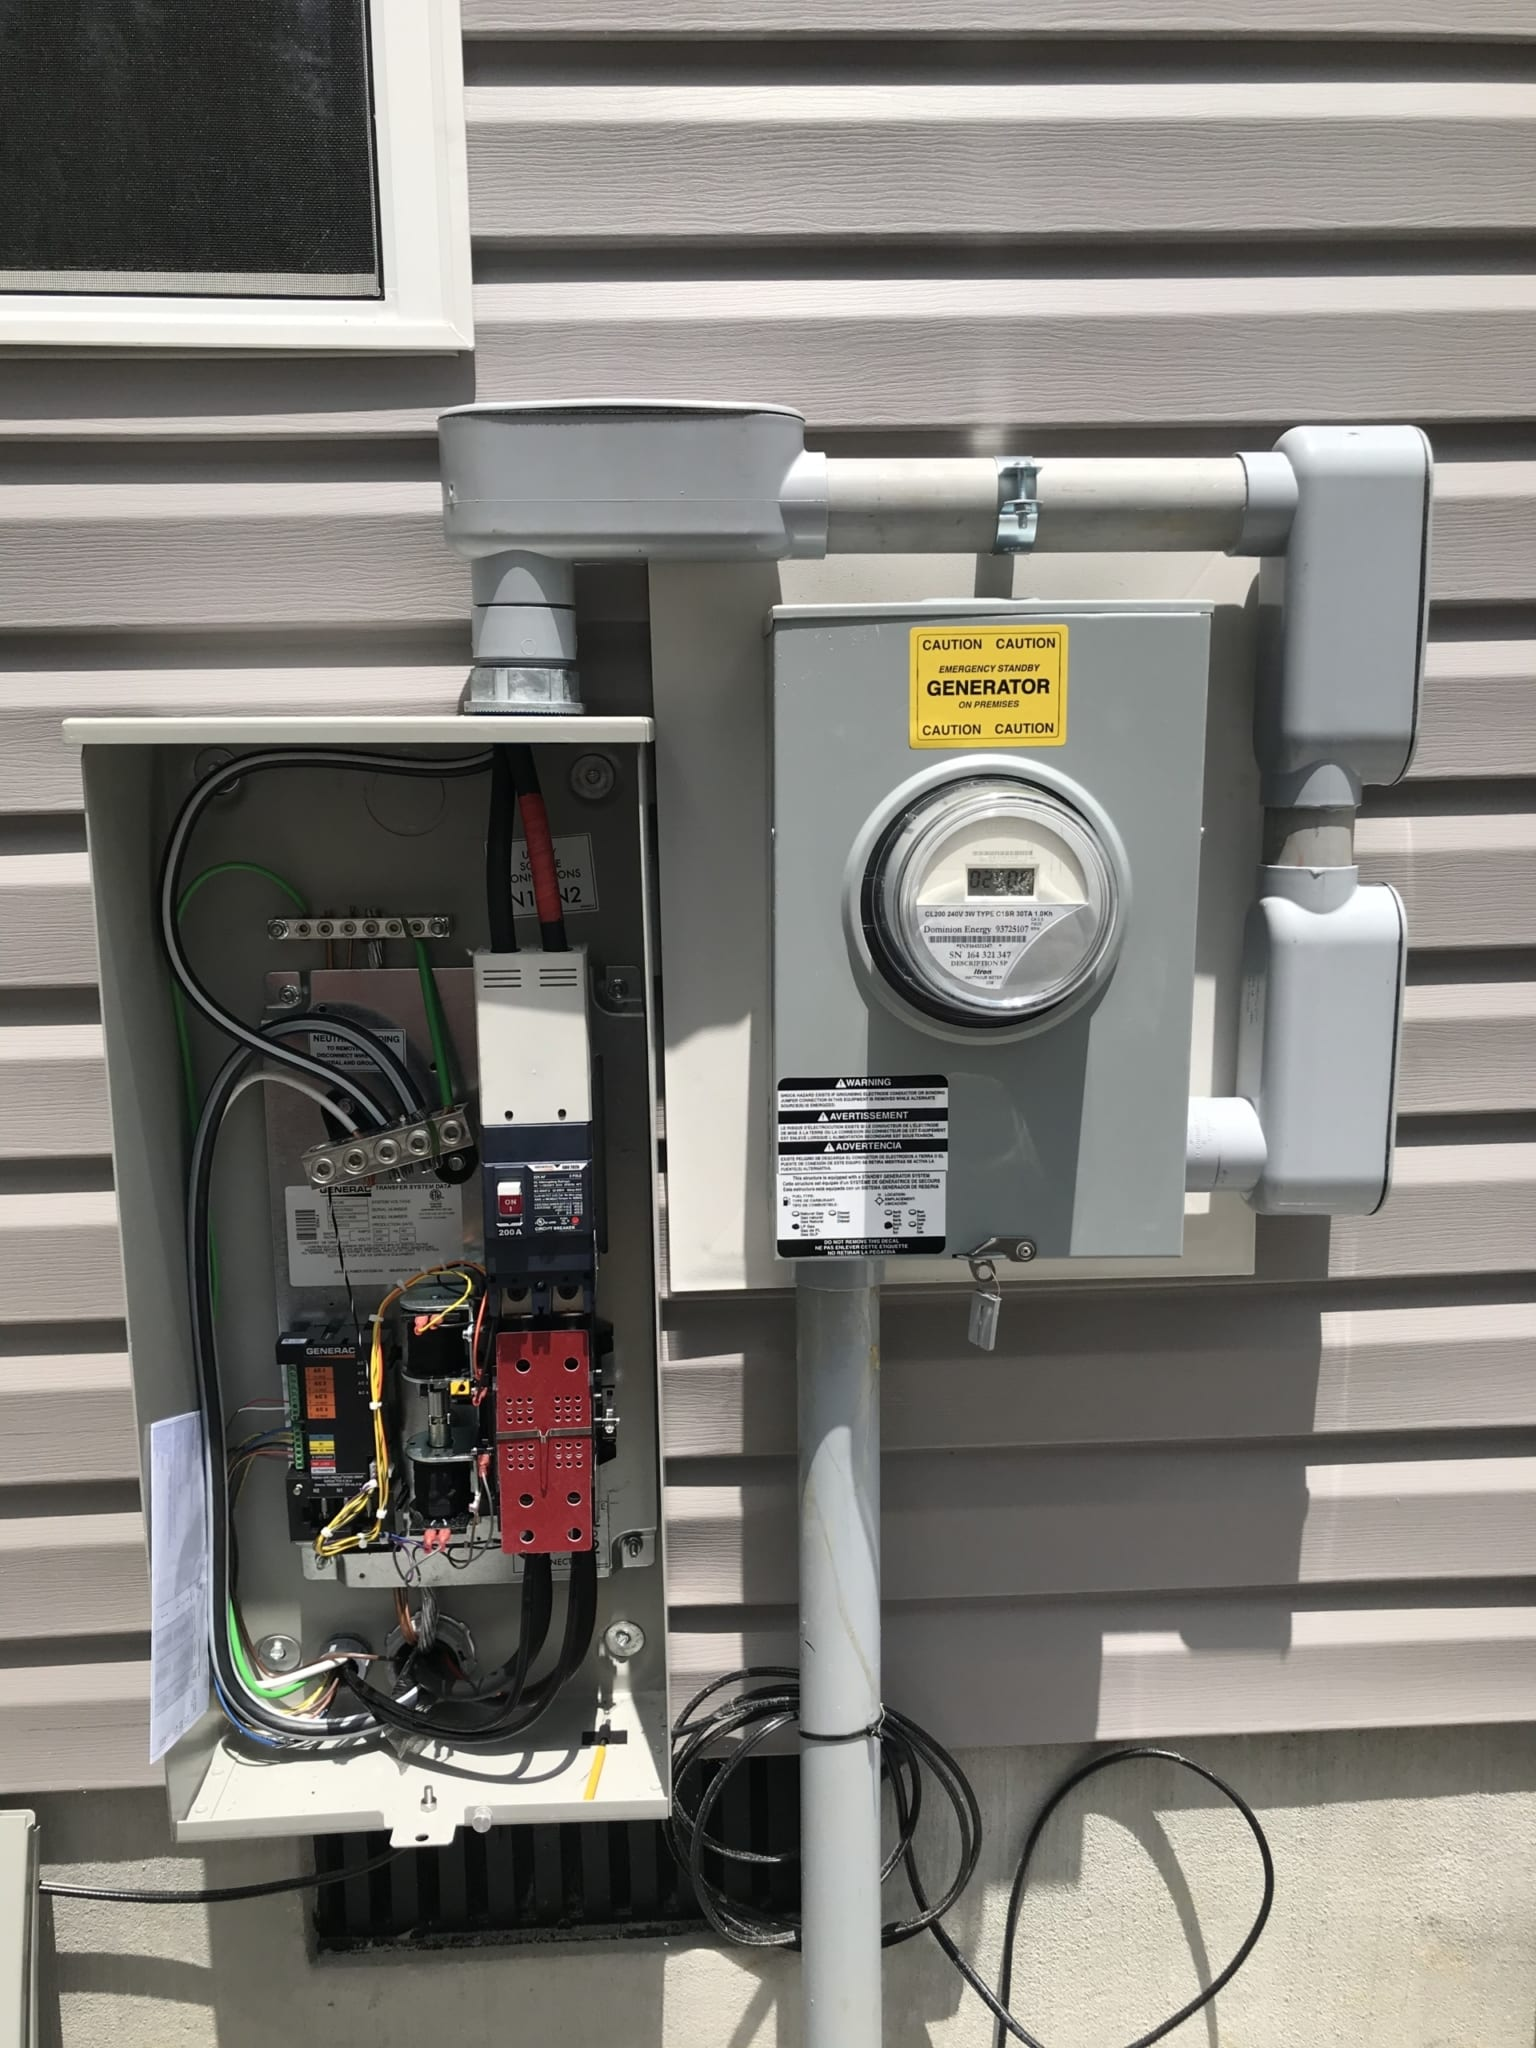 6.10.20 Charles City Generac Automatic Transfer Switch Open